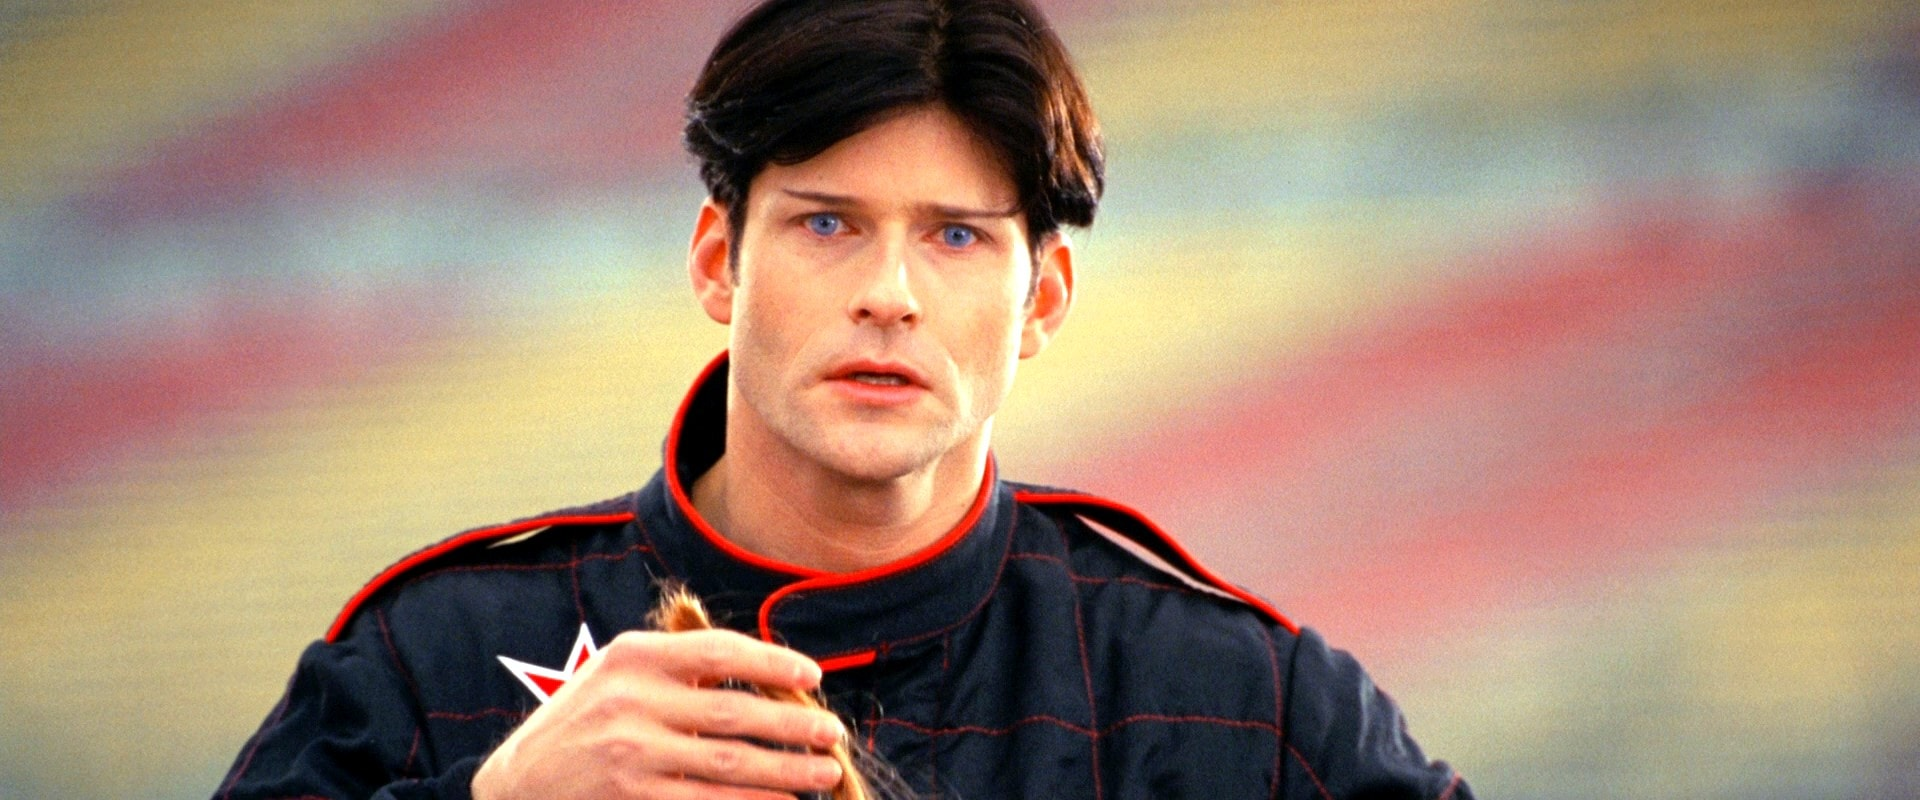 Crispin Glover HD pictures